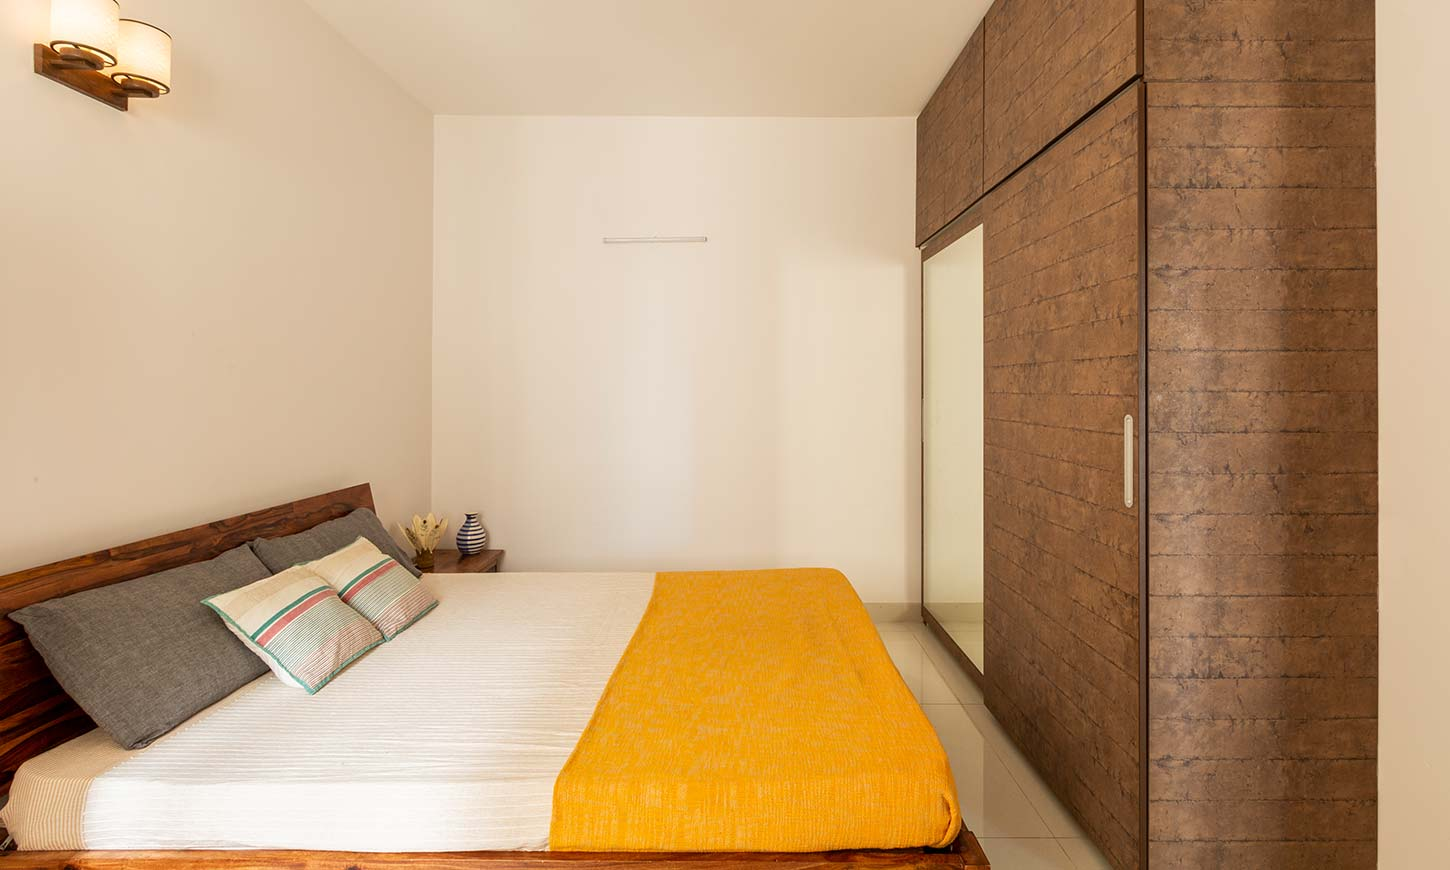 Bedroom interior with wardrobe and loft designed by best interior design firms in bangalore